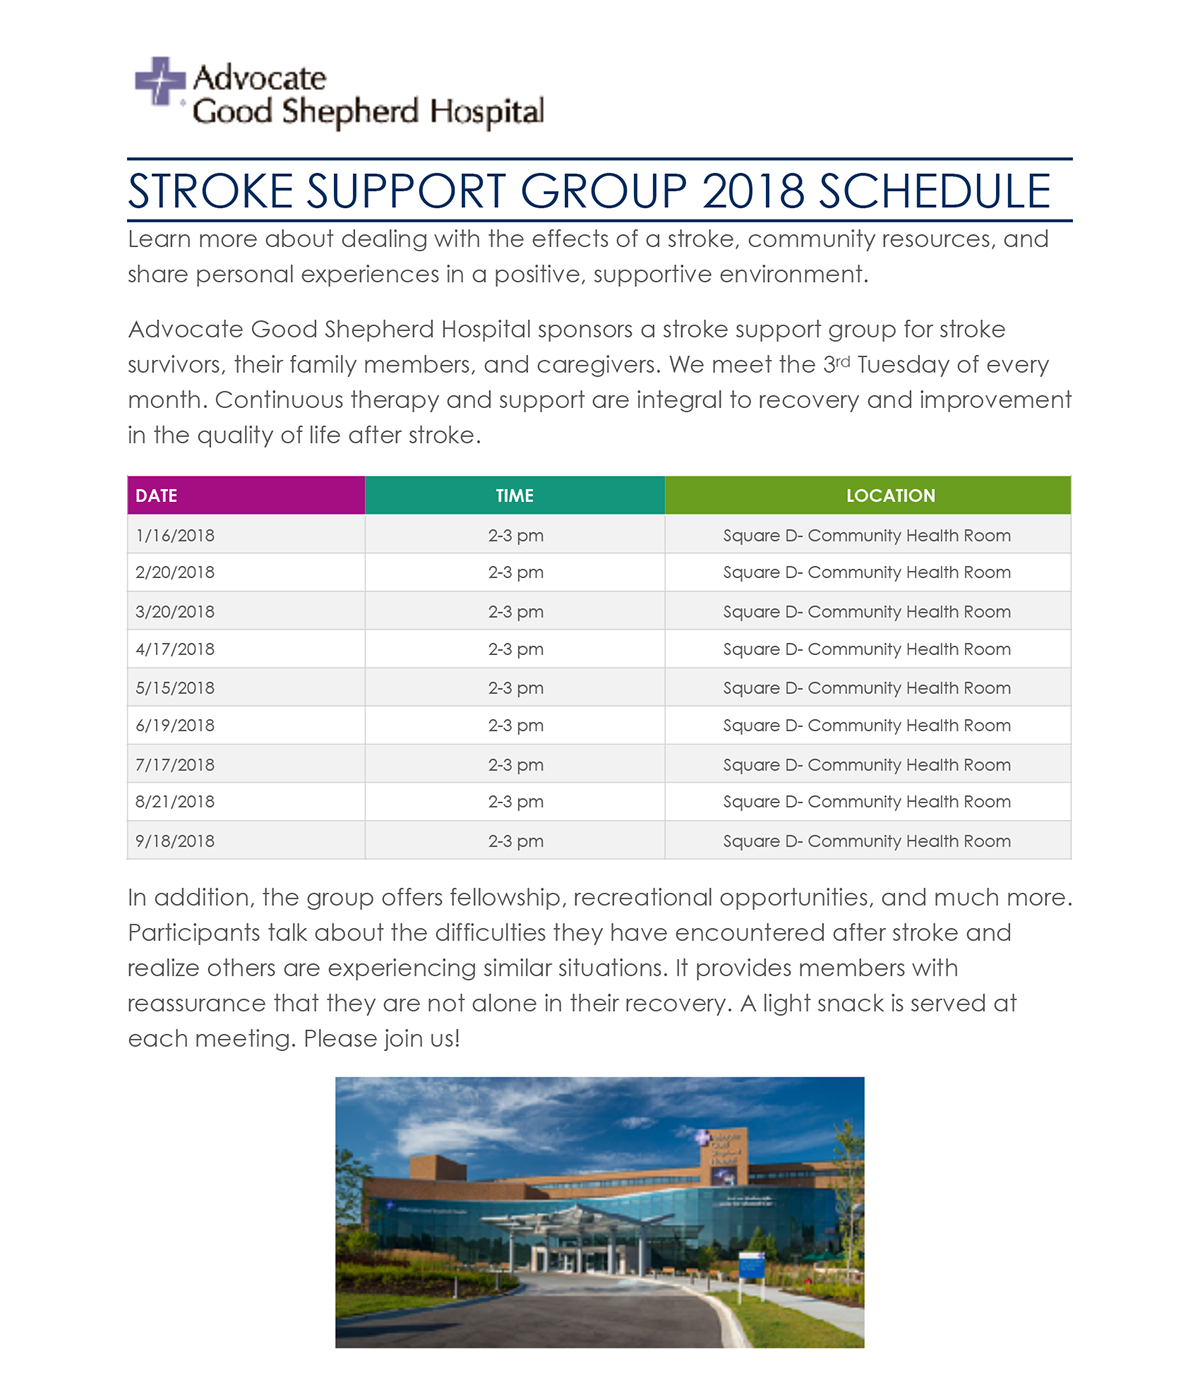 Supportgroupschedule cppftu